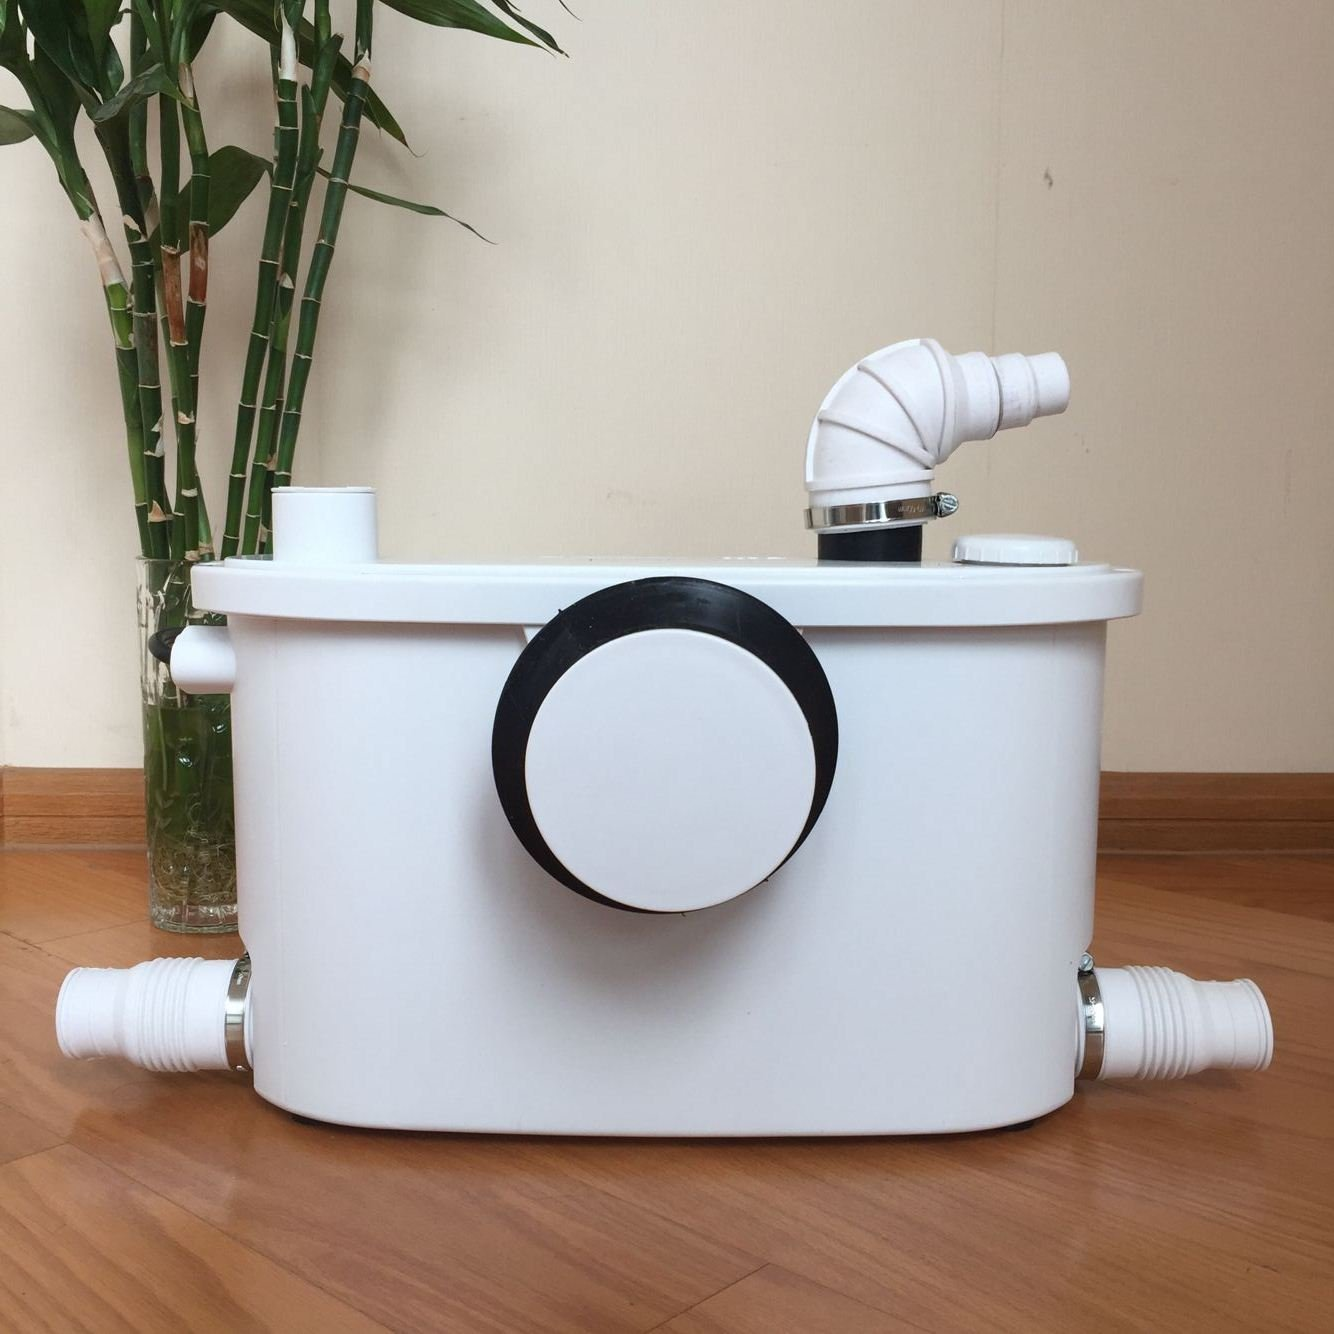 INTELFLO FLO400 Toilet Macerating Pump Macerator Pump White by INTELFLO